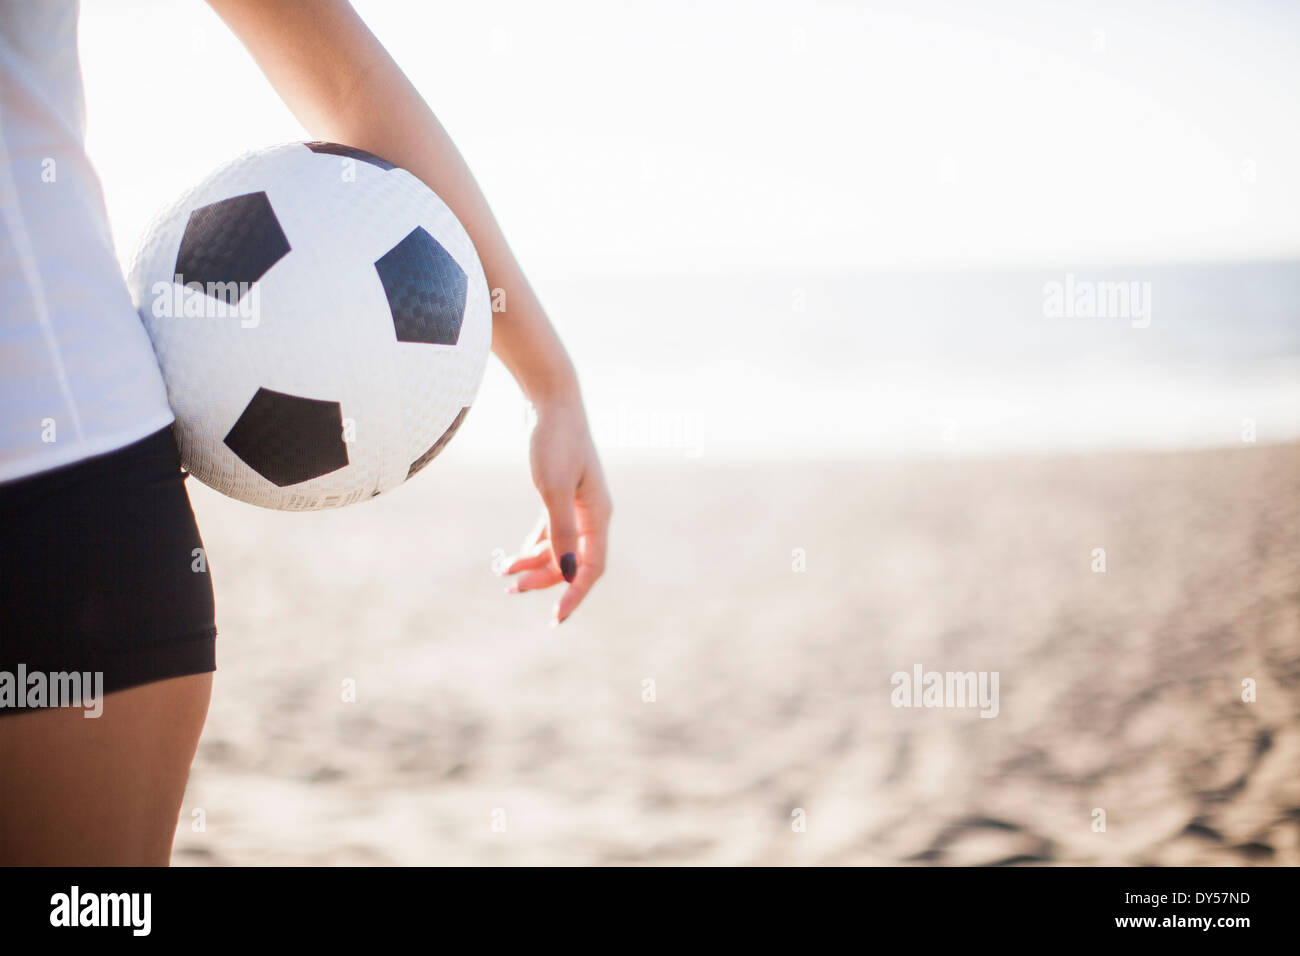 Young woman holding football Photo Stock